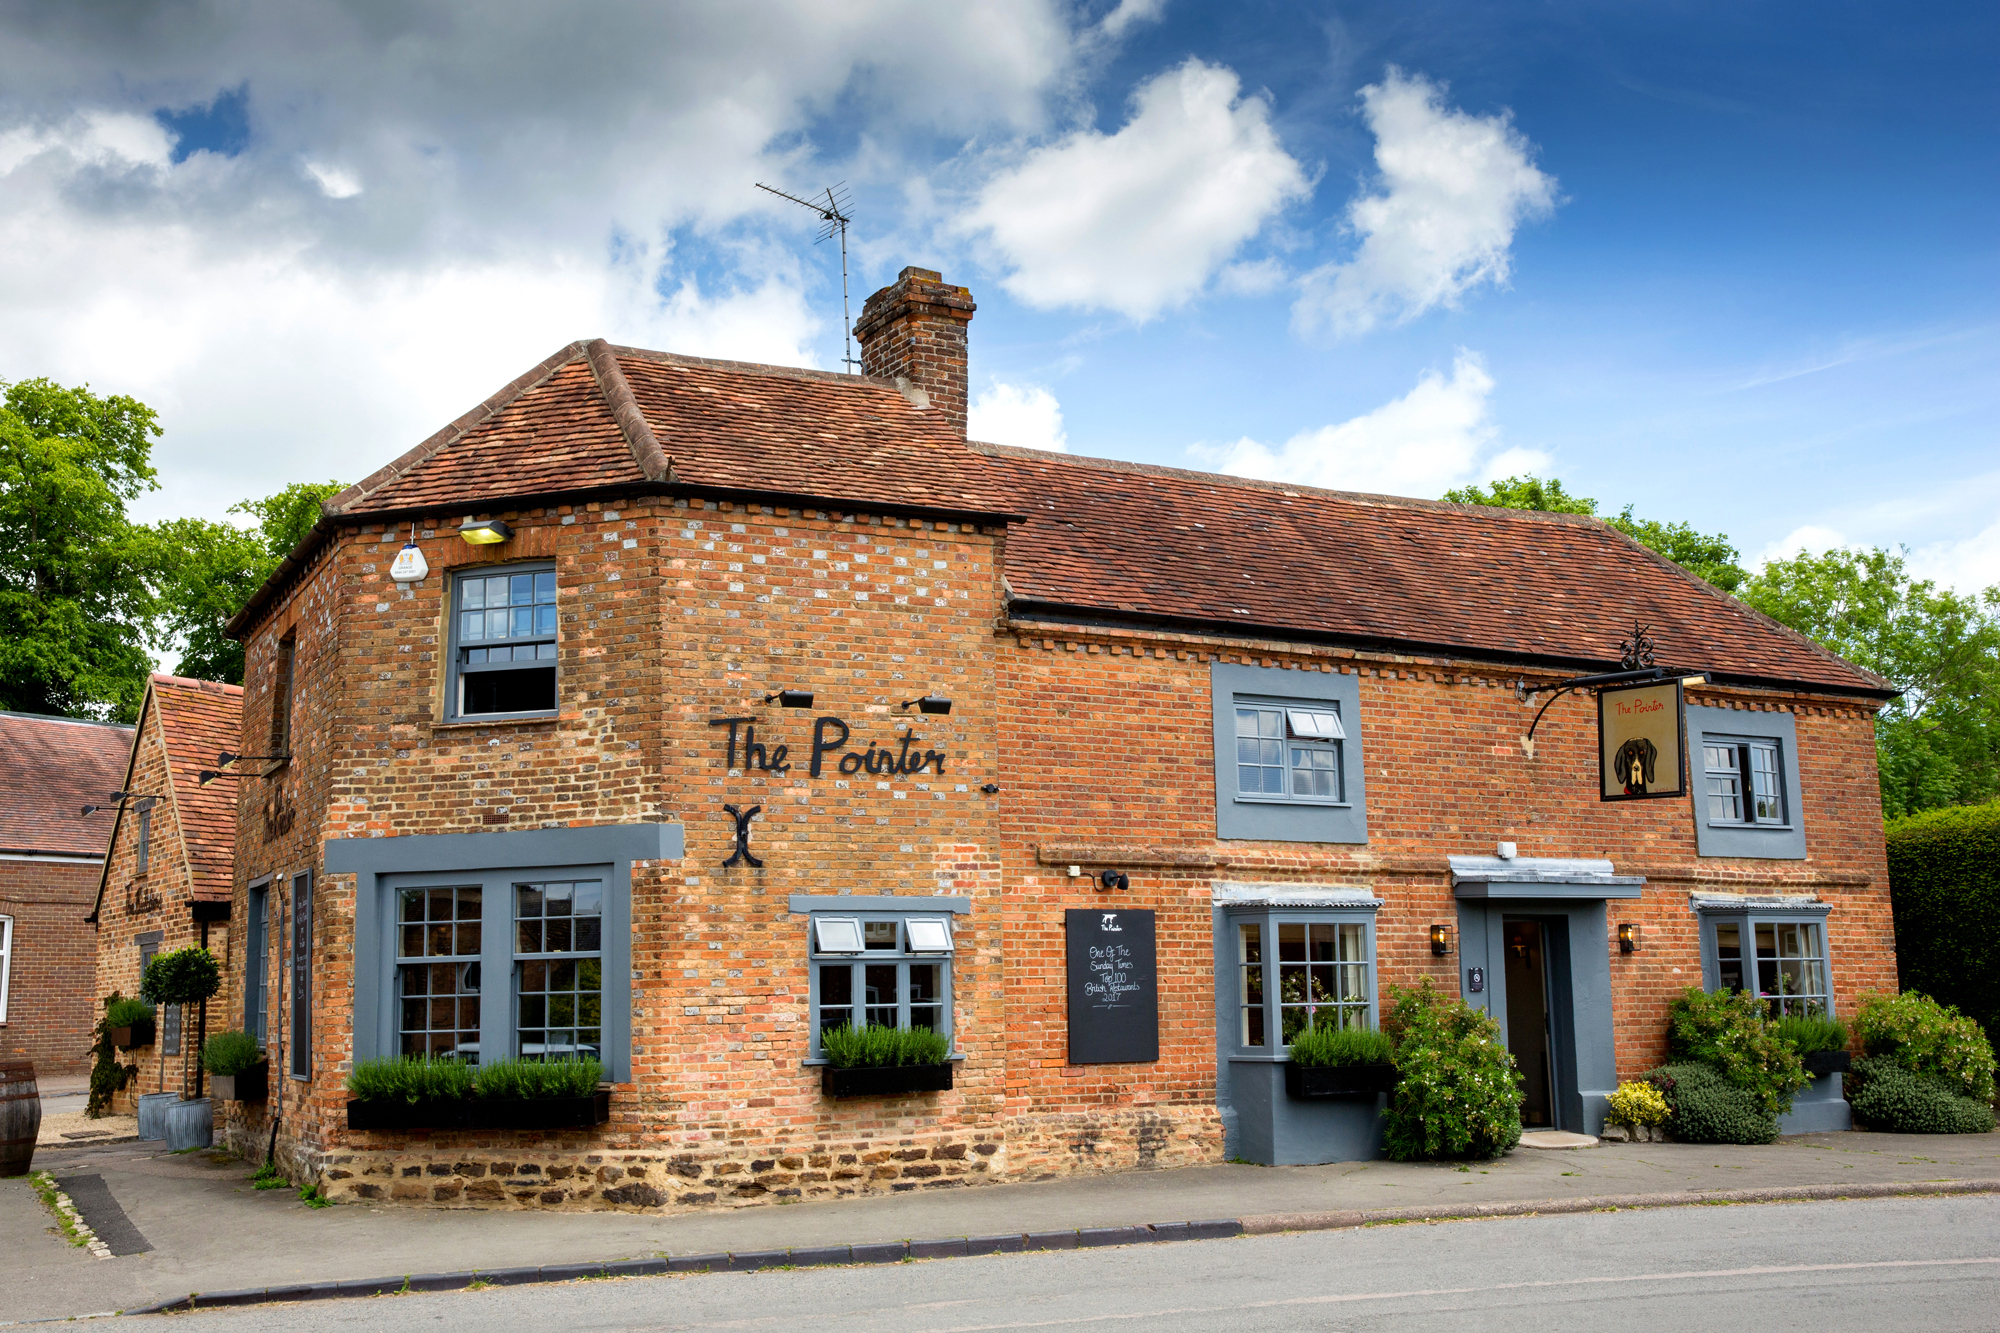 The Pointer, Brill, Buckinghamshire 18